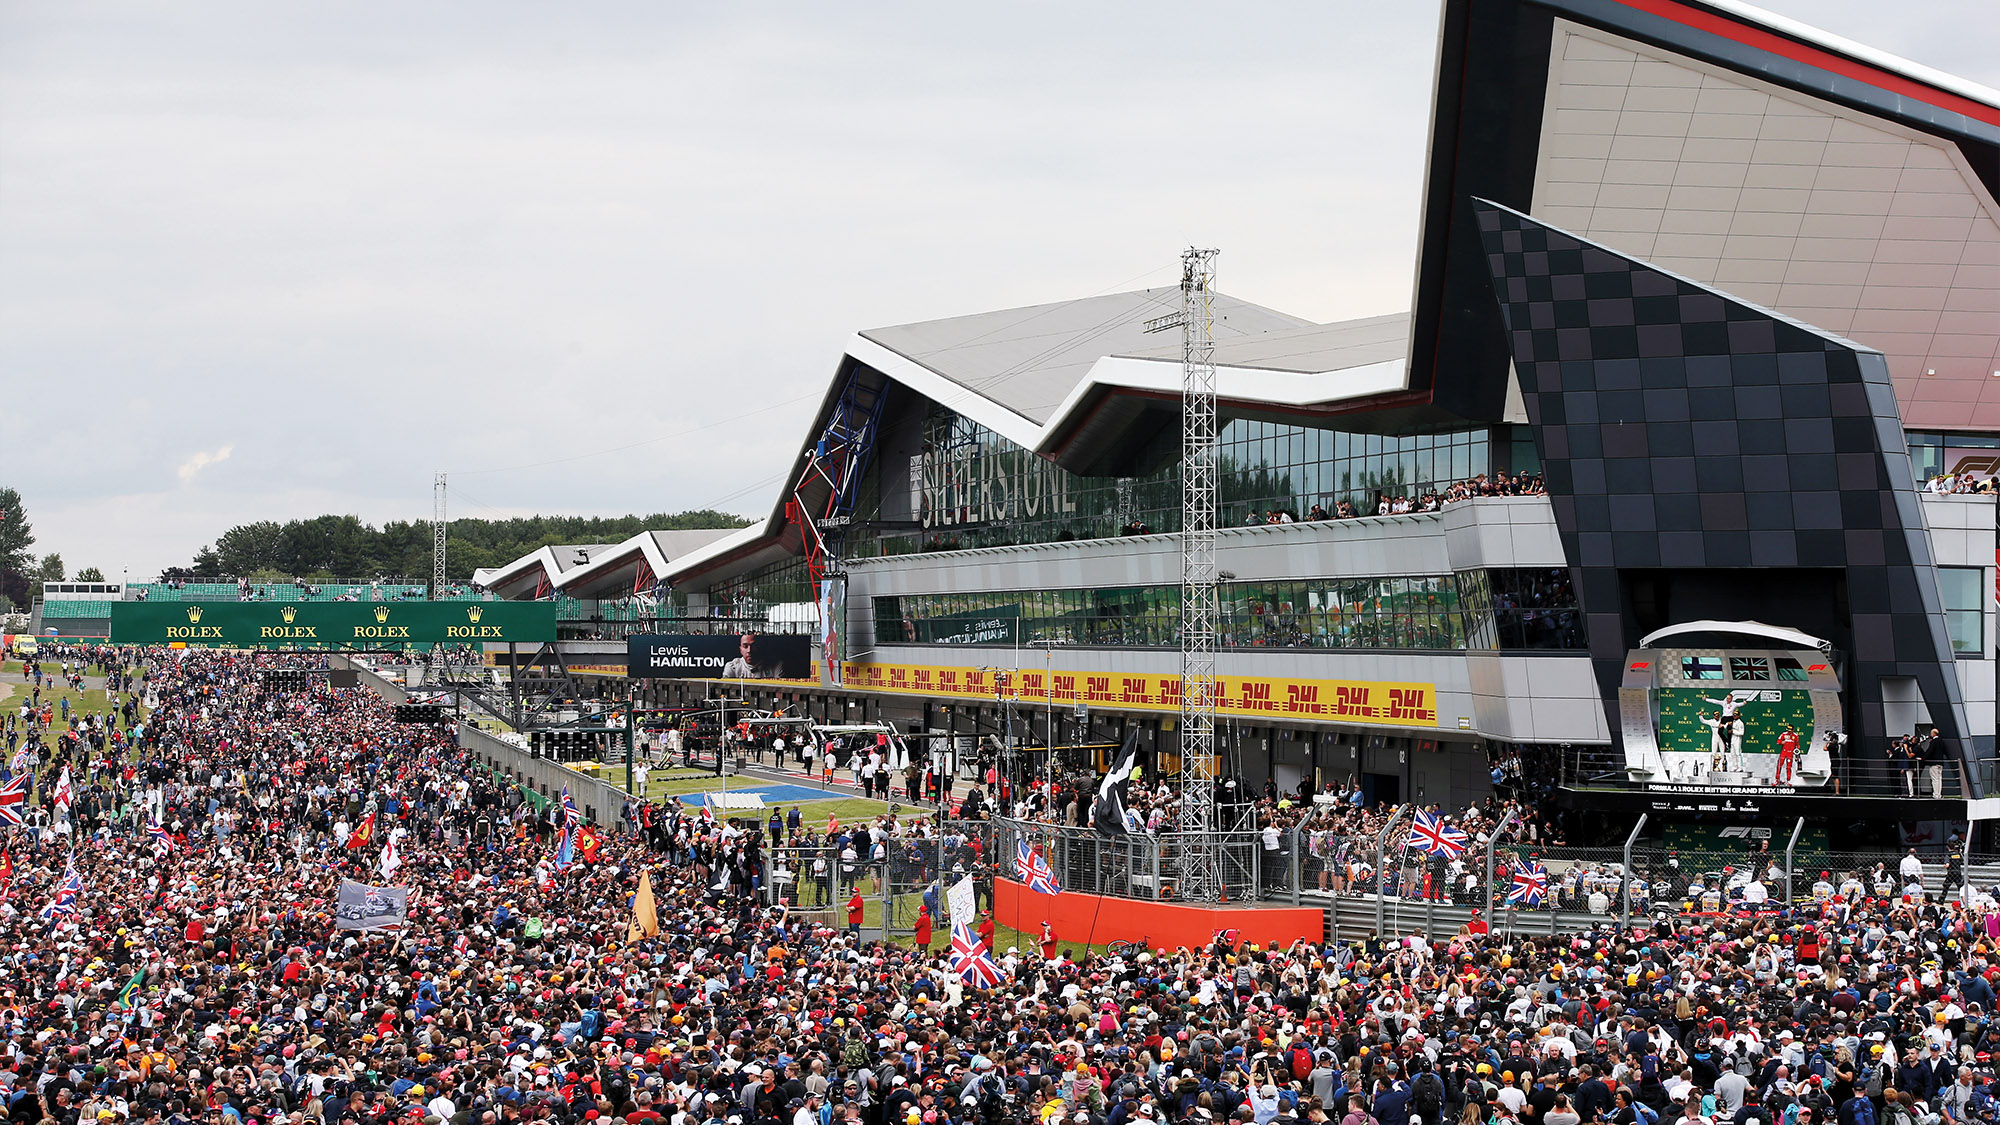 Crowds on the Silverstone circuit at the end of the British Grand Prix